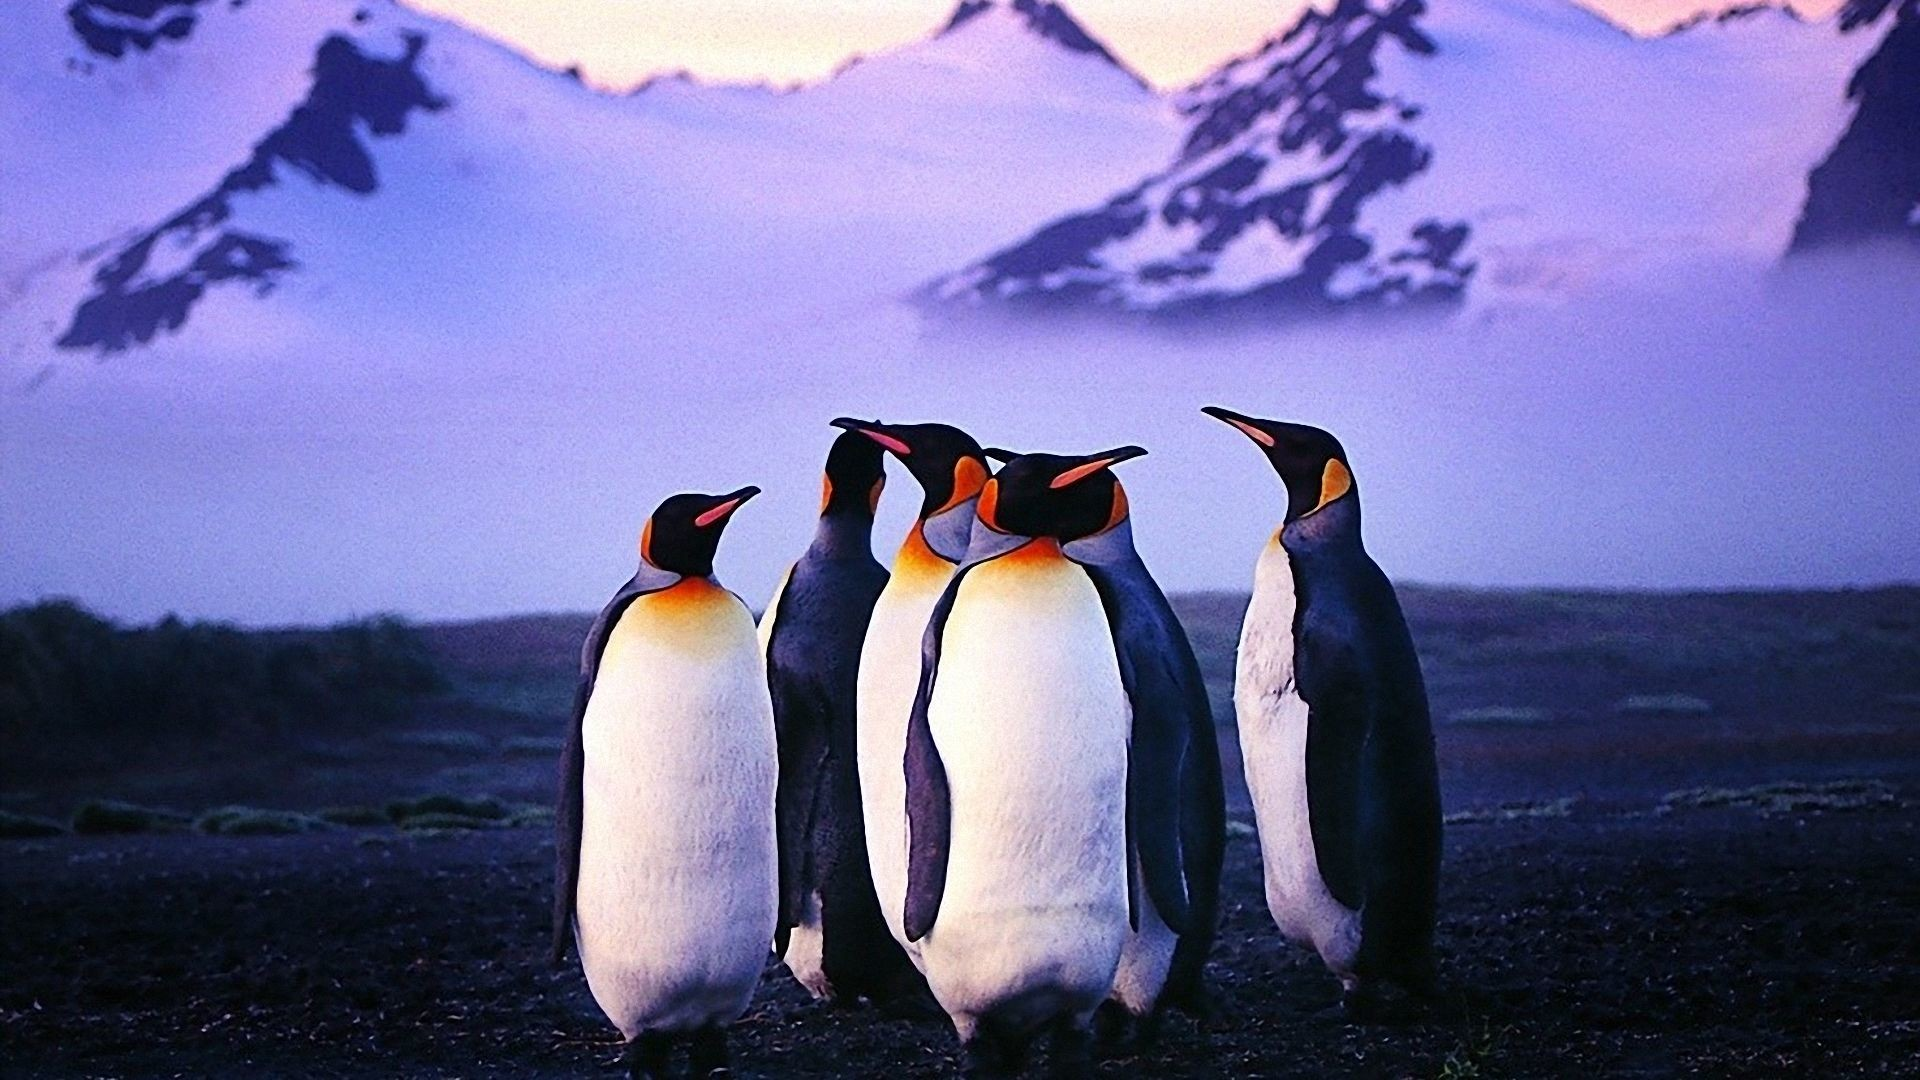 … penguins wallpapers free download free desk wallpapers …